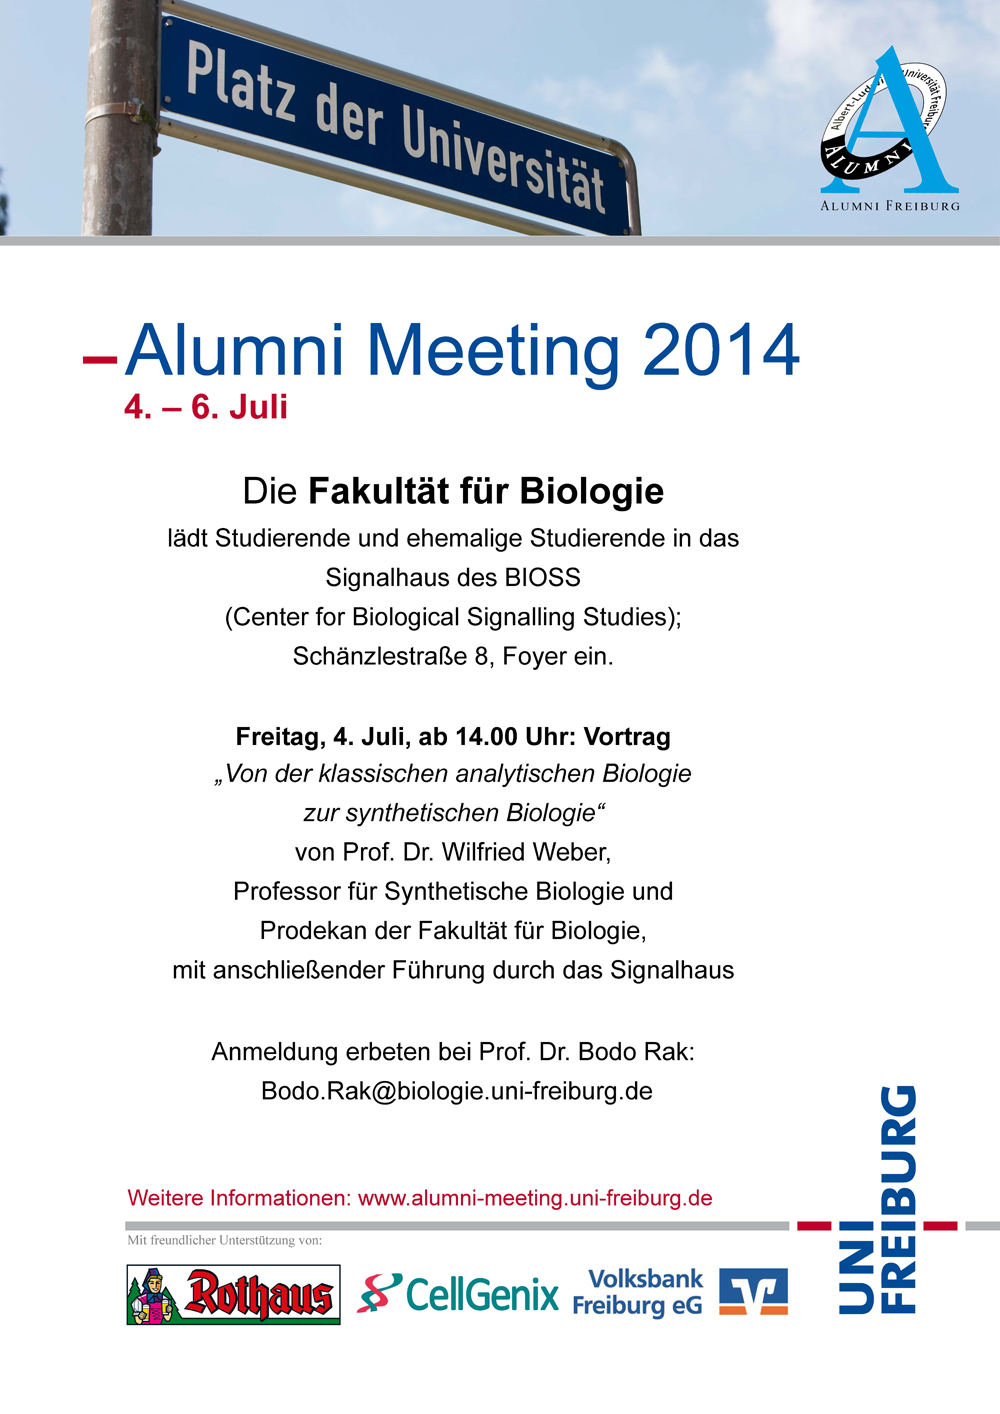 alumni-meeting-2014.jpg